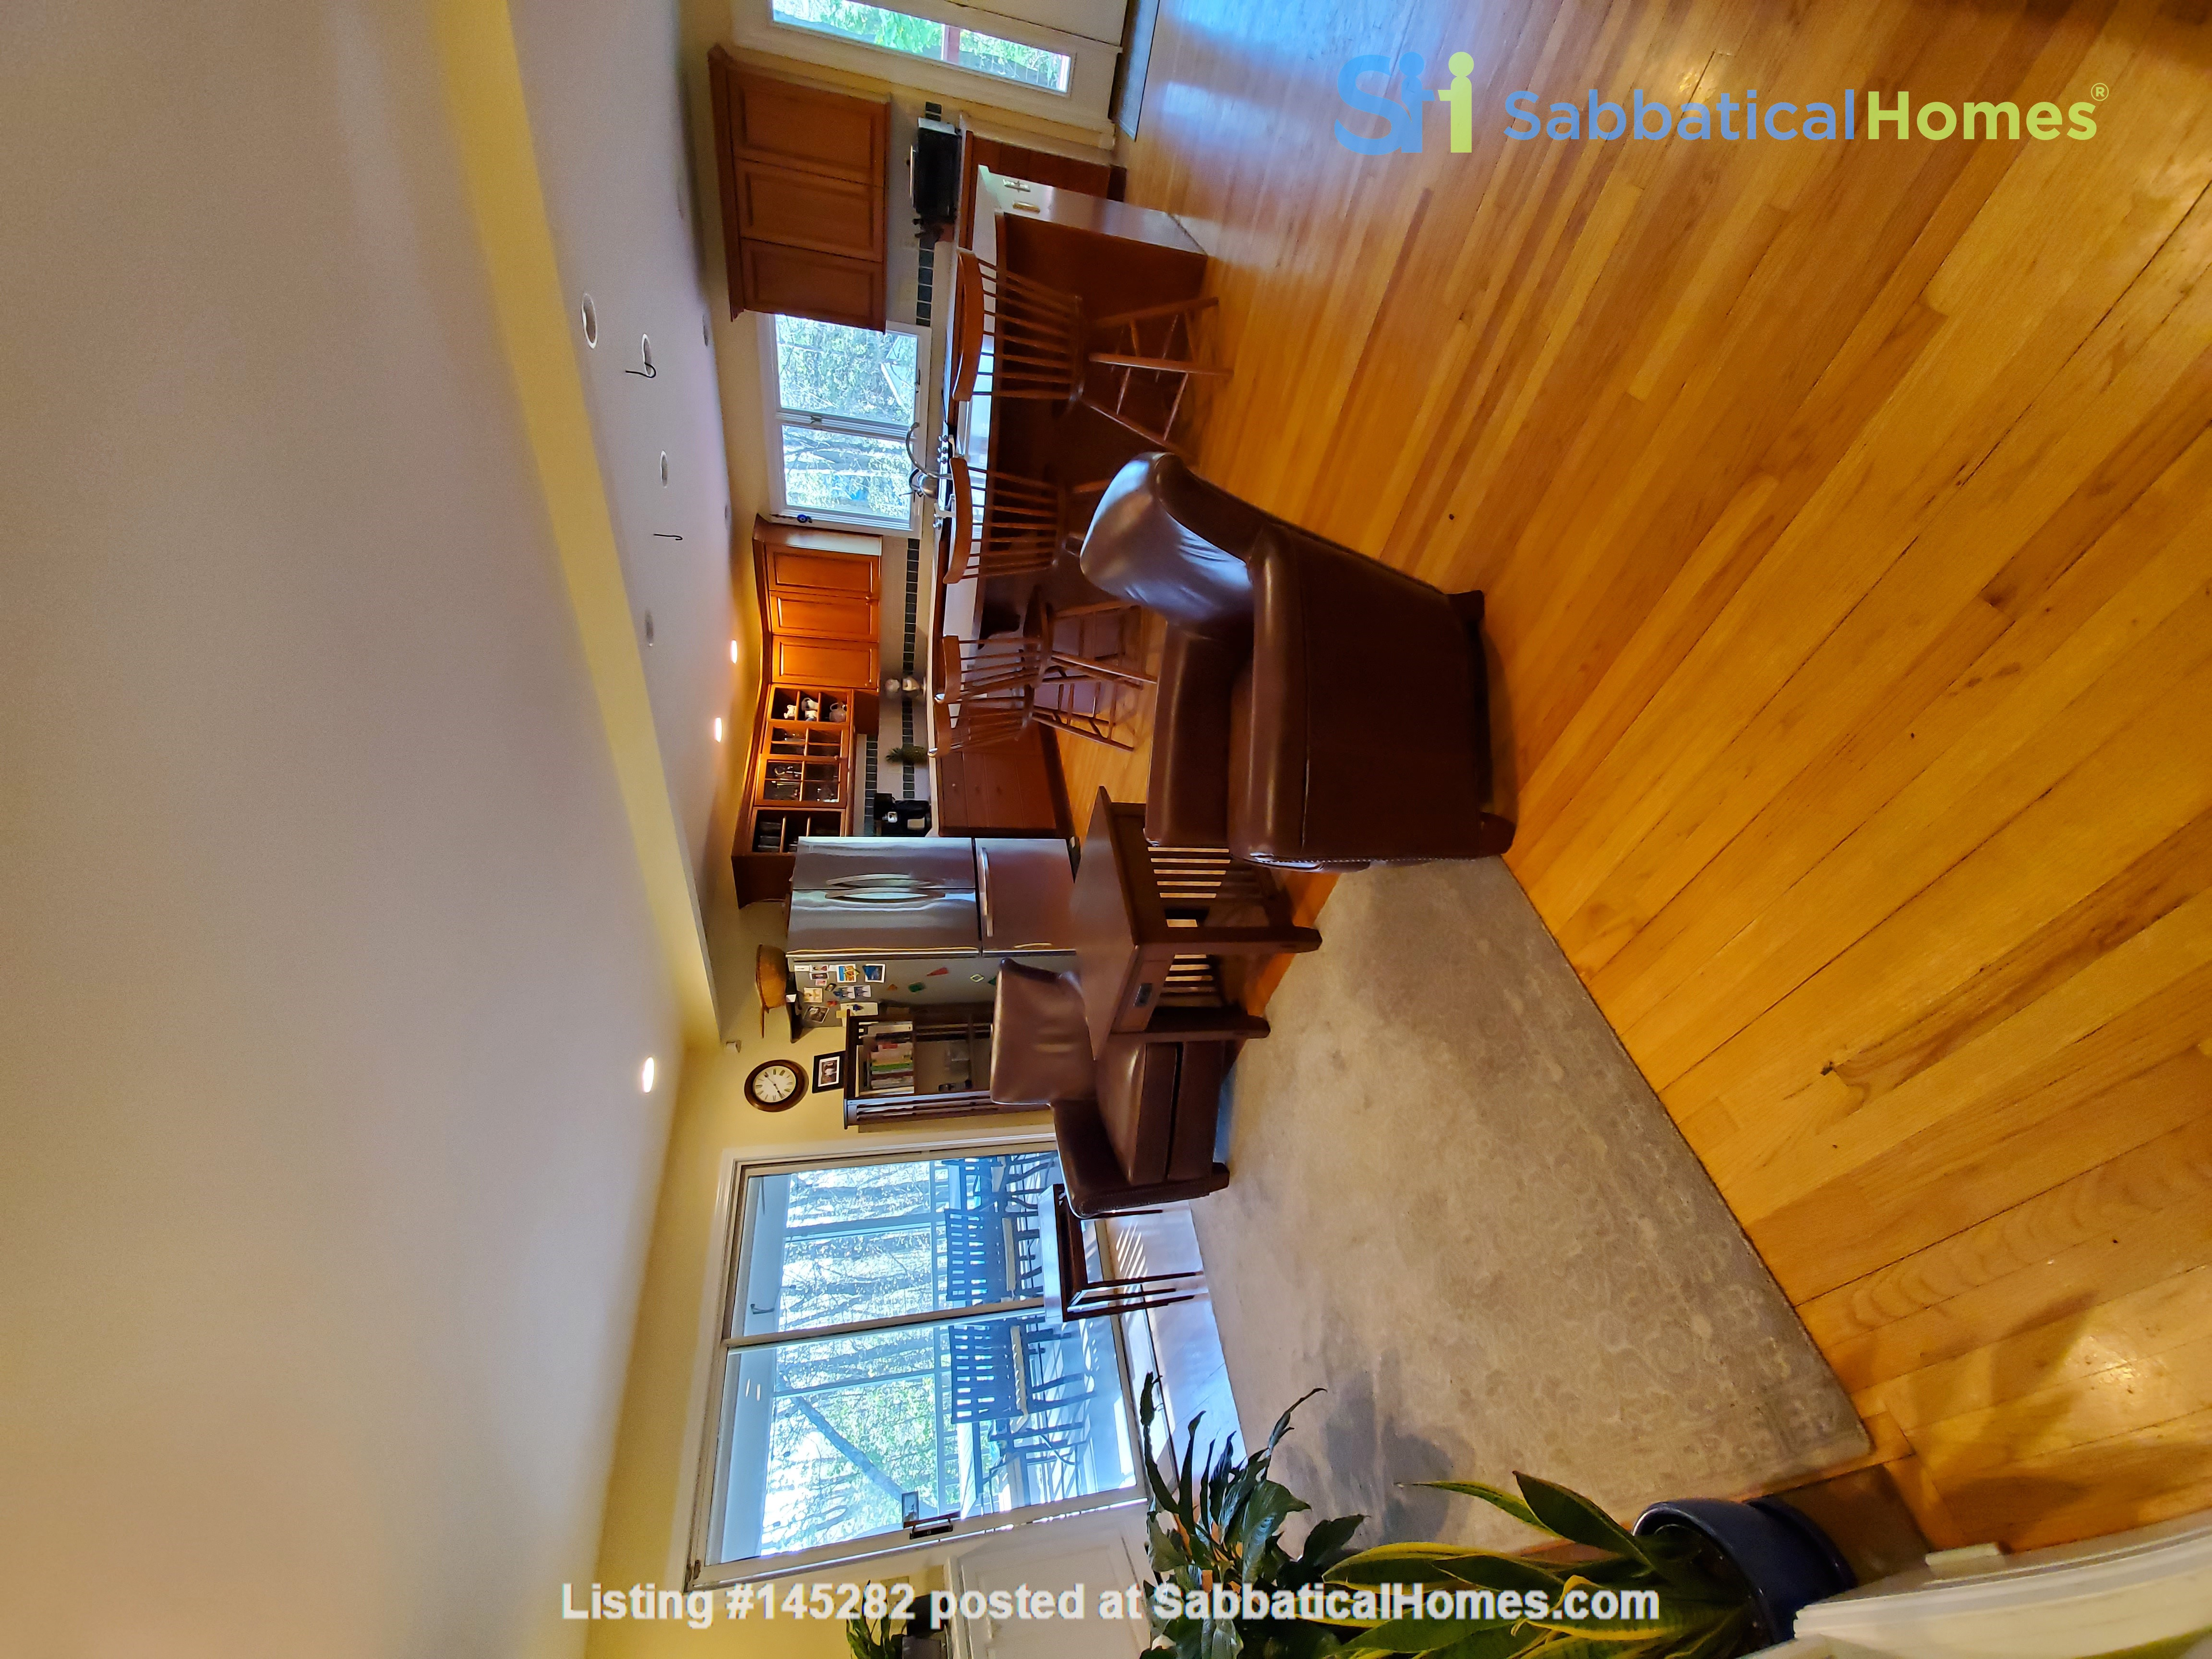 Spacious, Peaceful Getaway in Beautiful Amherst, MA, 4 BR 3.5 ba Home Rental in Amherst, Massachusetts, United States 5